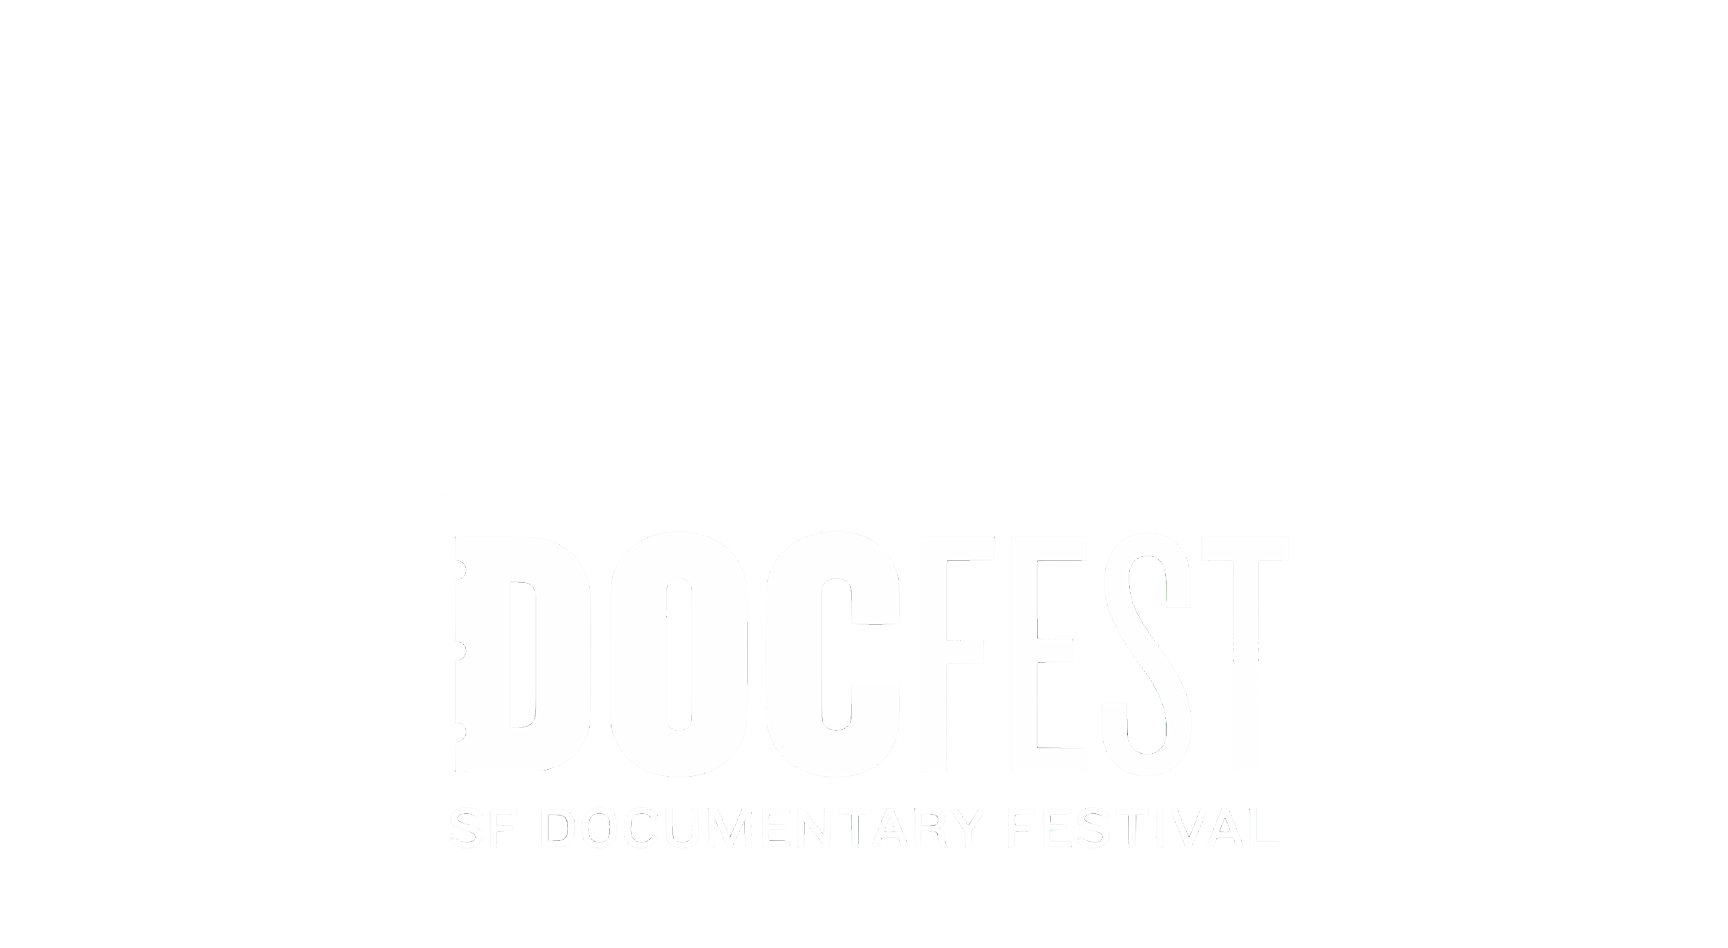 SFDocfest.png